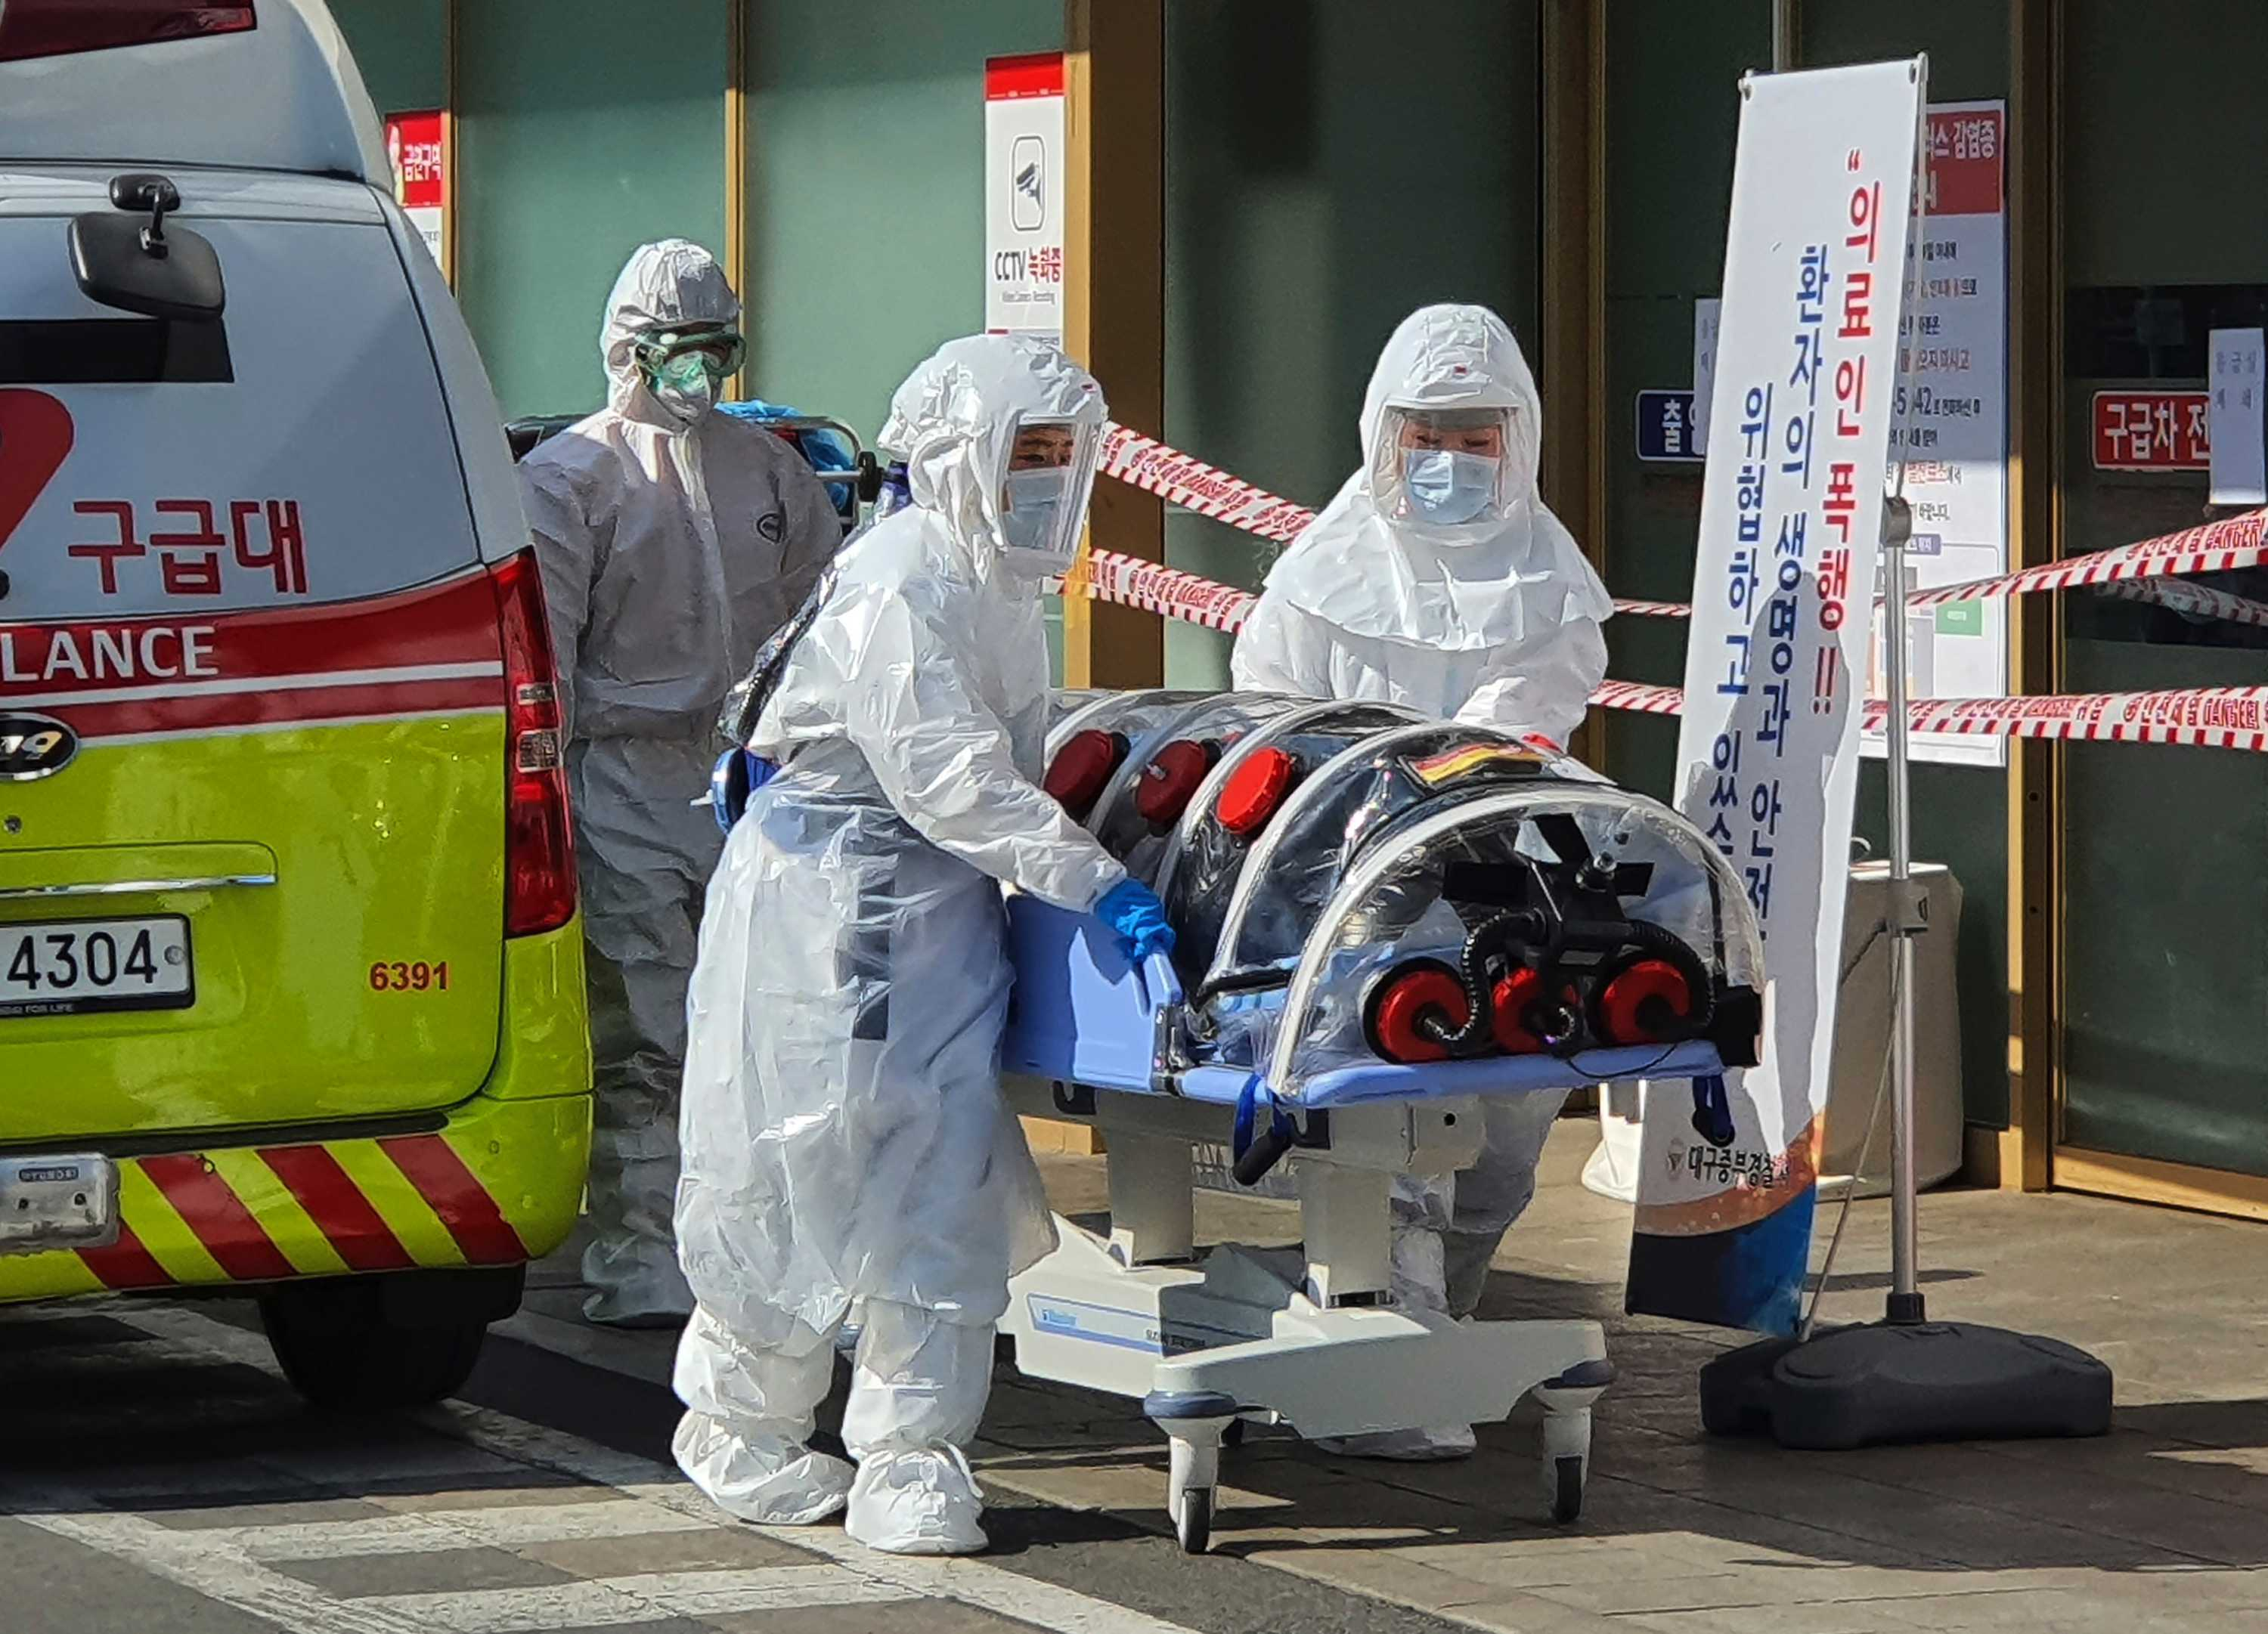 Medical workers wearing protective gear move a patient suspected of contracting the new coronavirus.